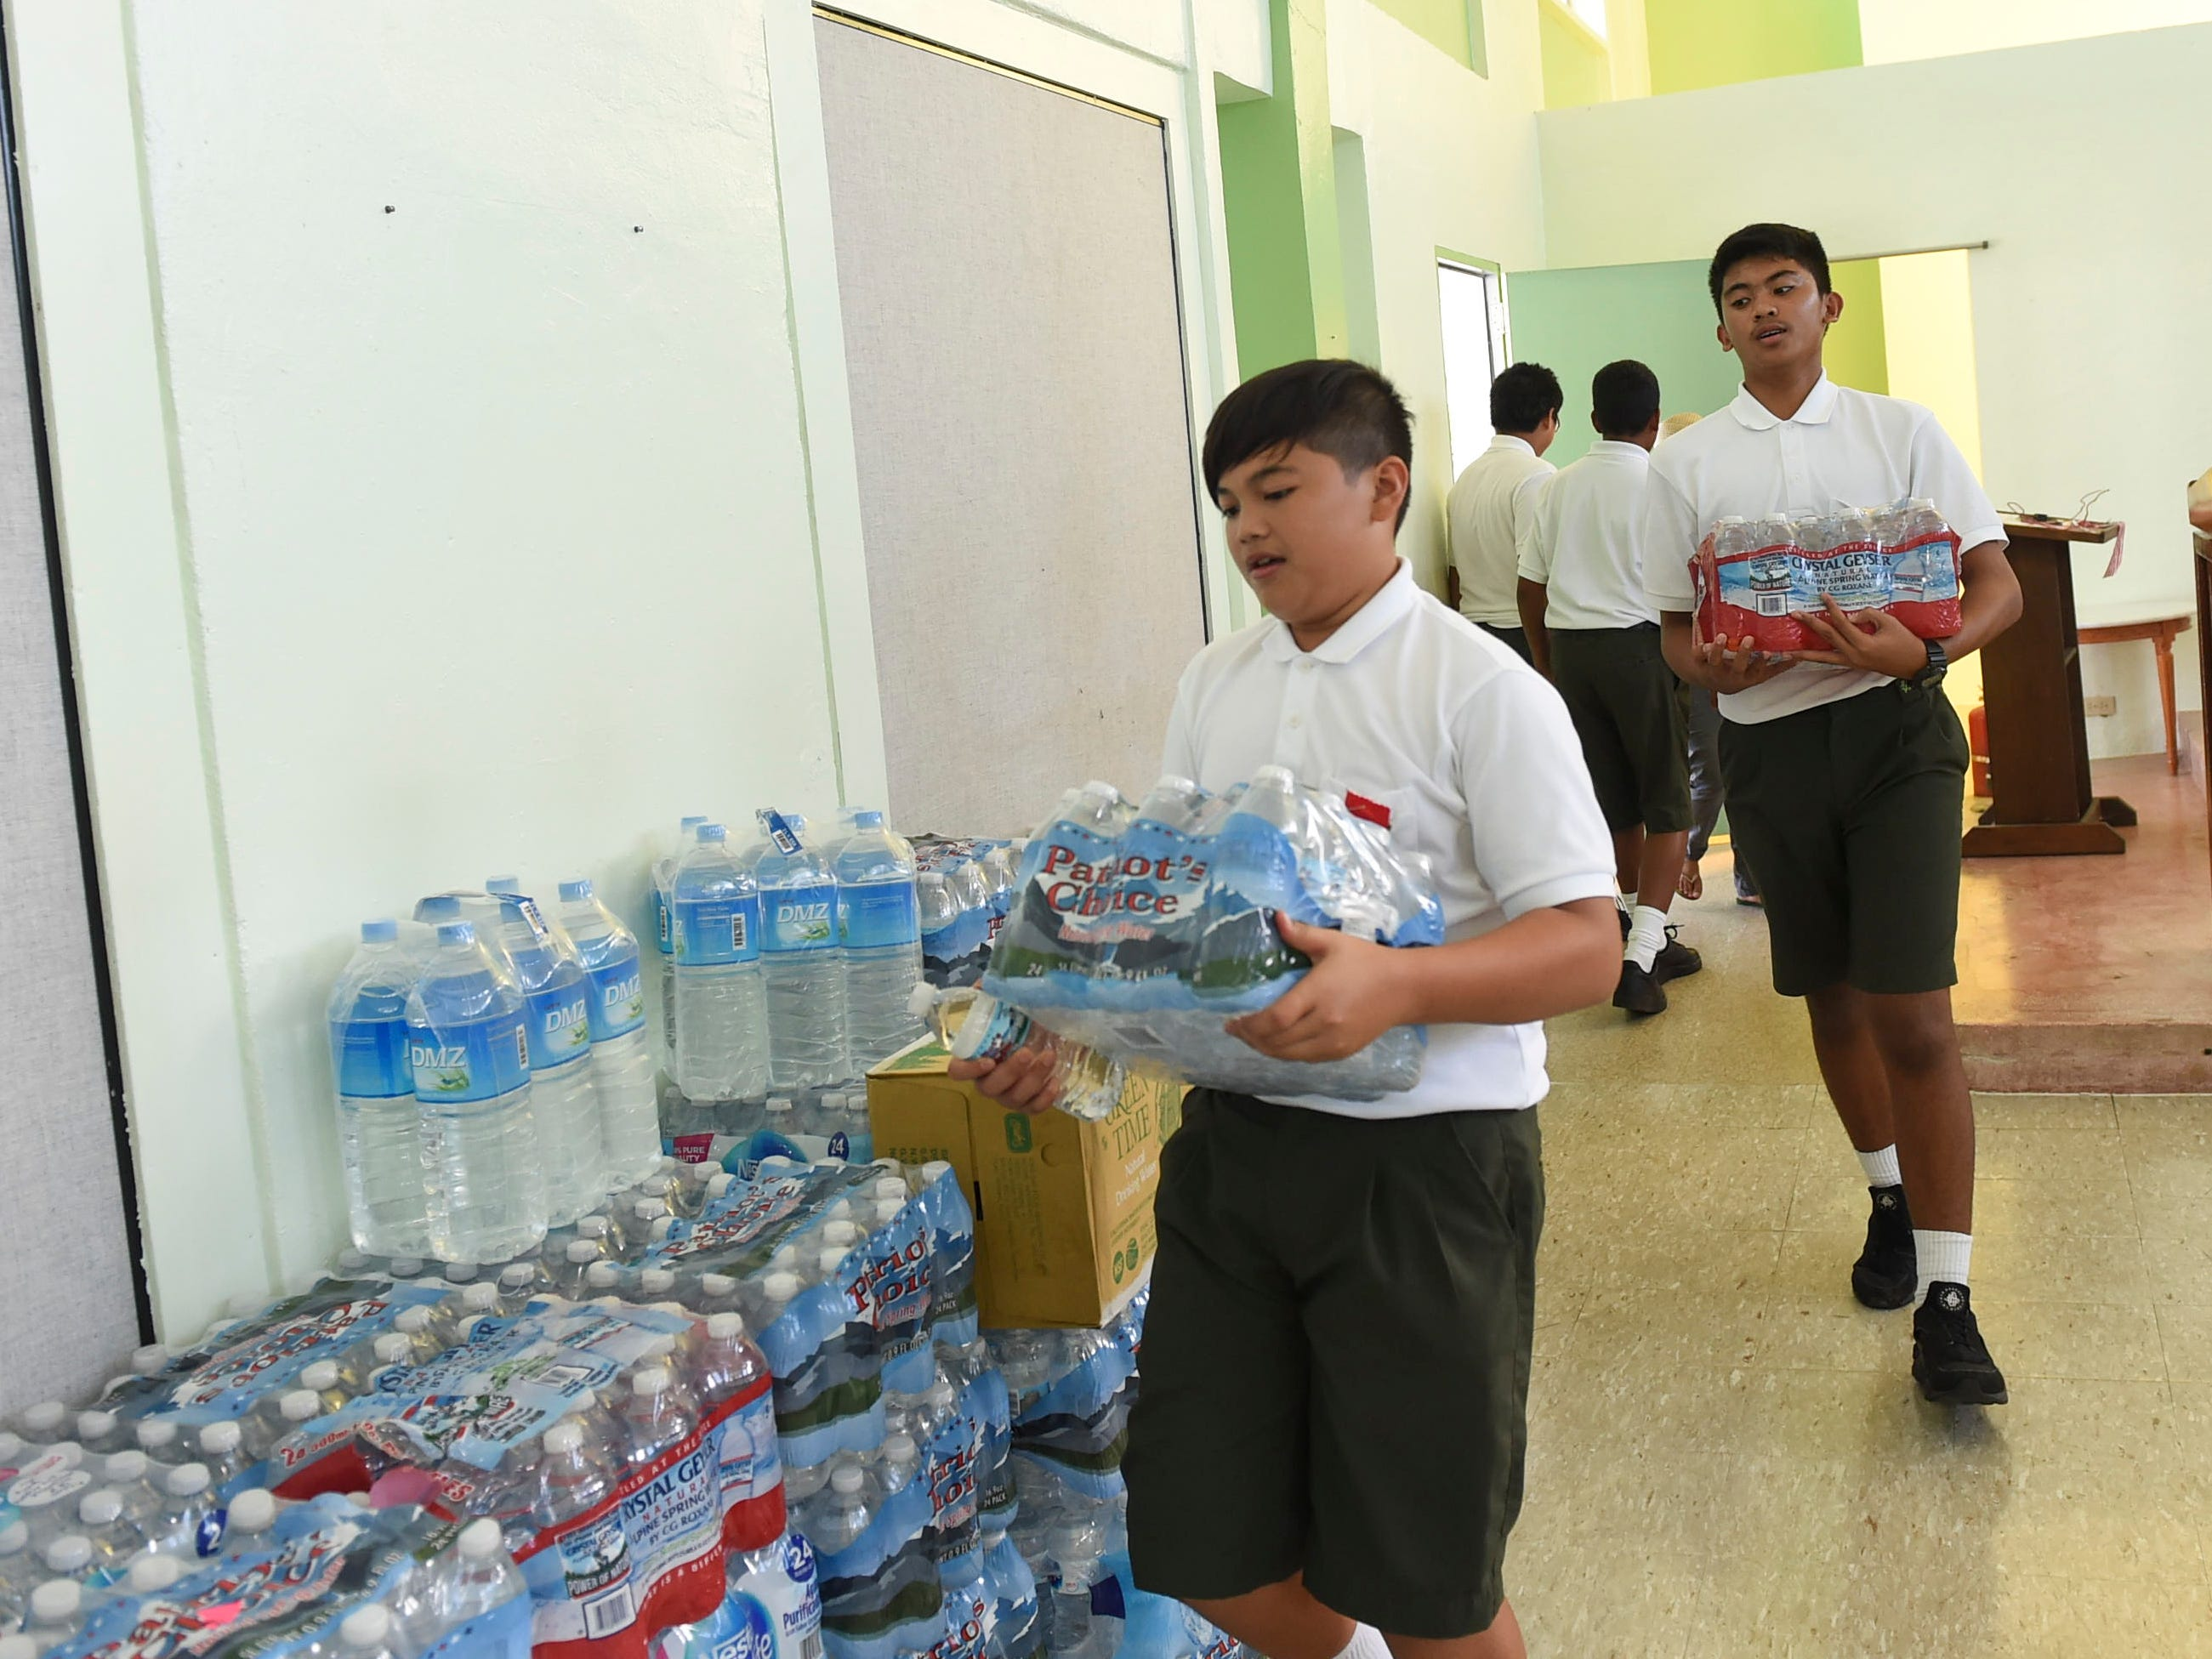 San Vicente Catholic School students Bryce Anthony Cruz Sablan, 12, front, and Joseph A. Mafnas, 13, help carry cases of bottled water for a Super Typhoon Yutu relief effort spearheaded by local organizations Prutehi Litekyan - Save Ritidian and Håya Foundation at the San Vicente Catholic School campus, Oct. 29, 2018.